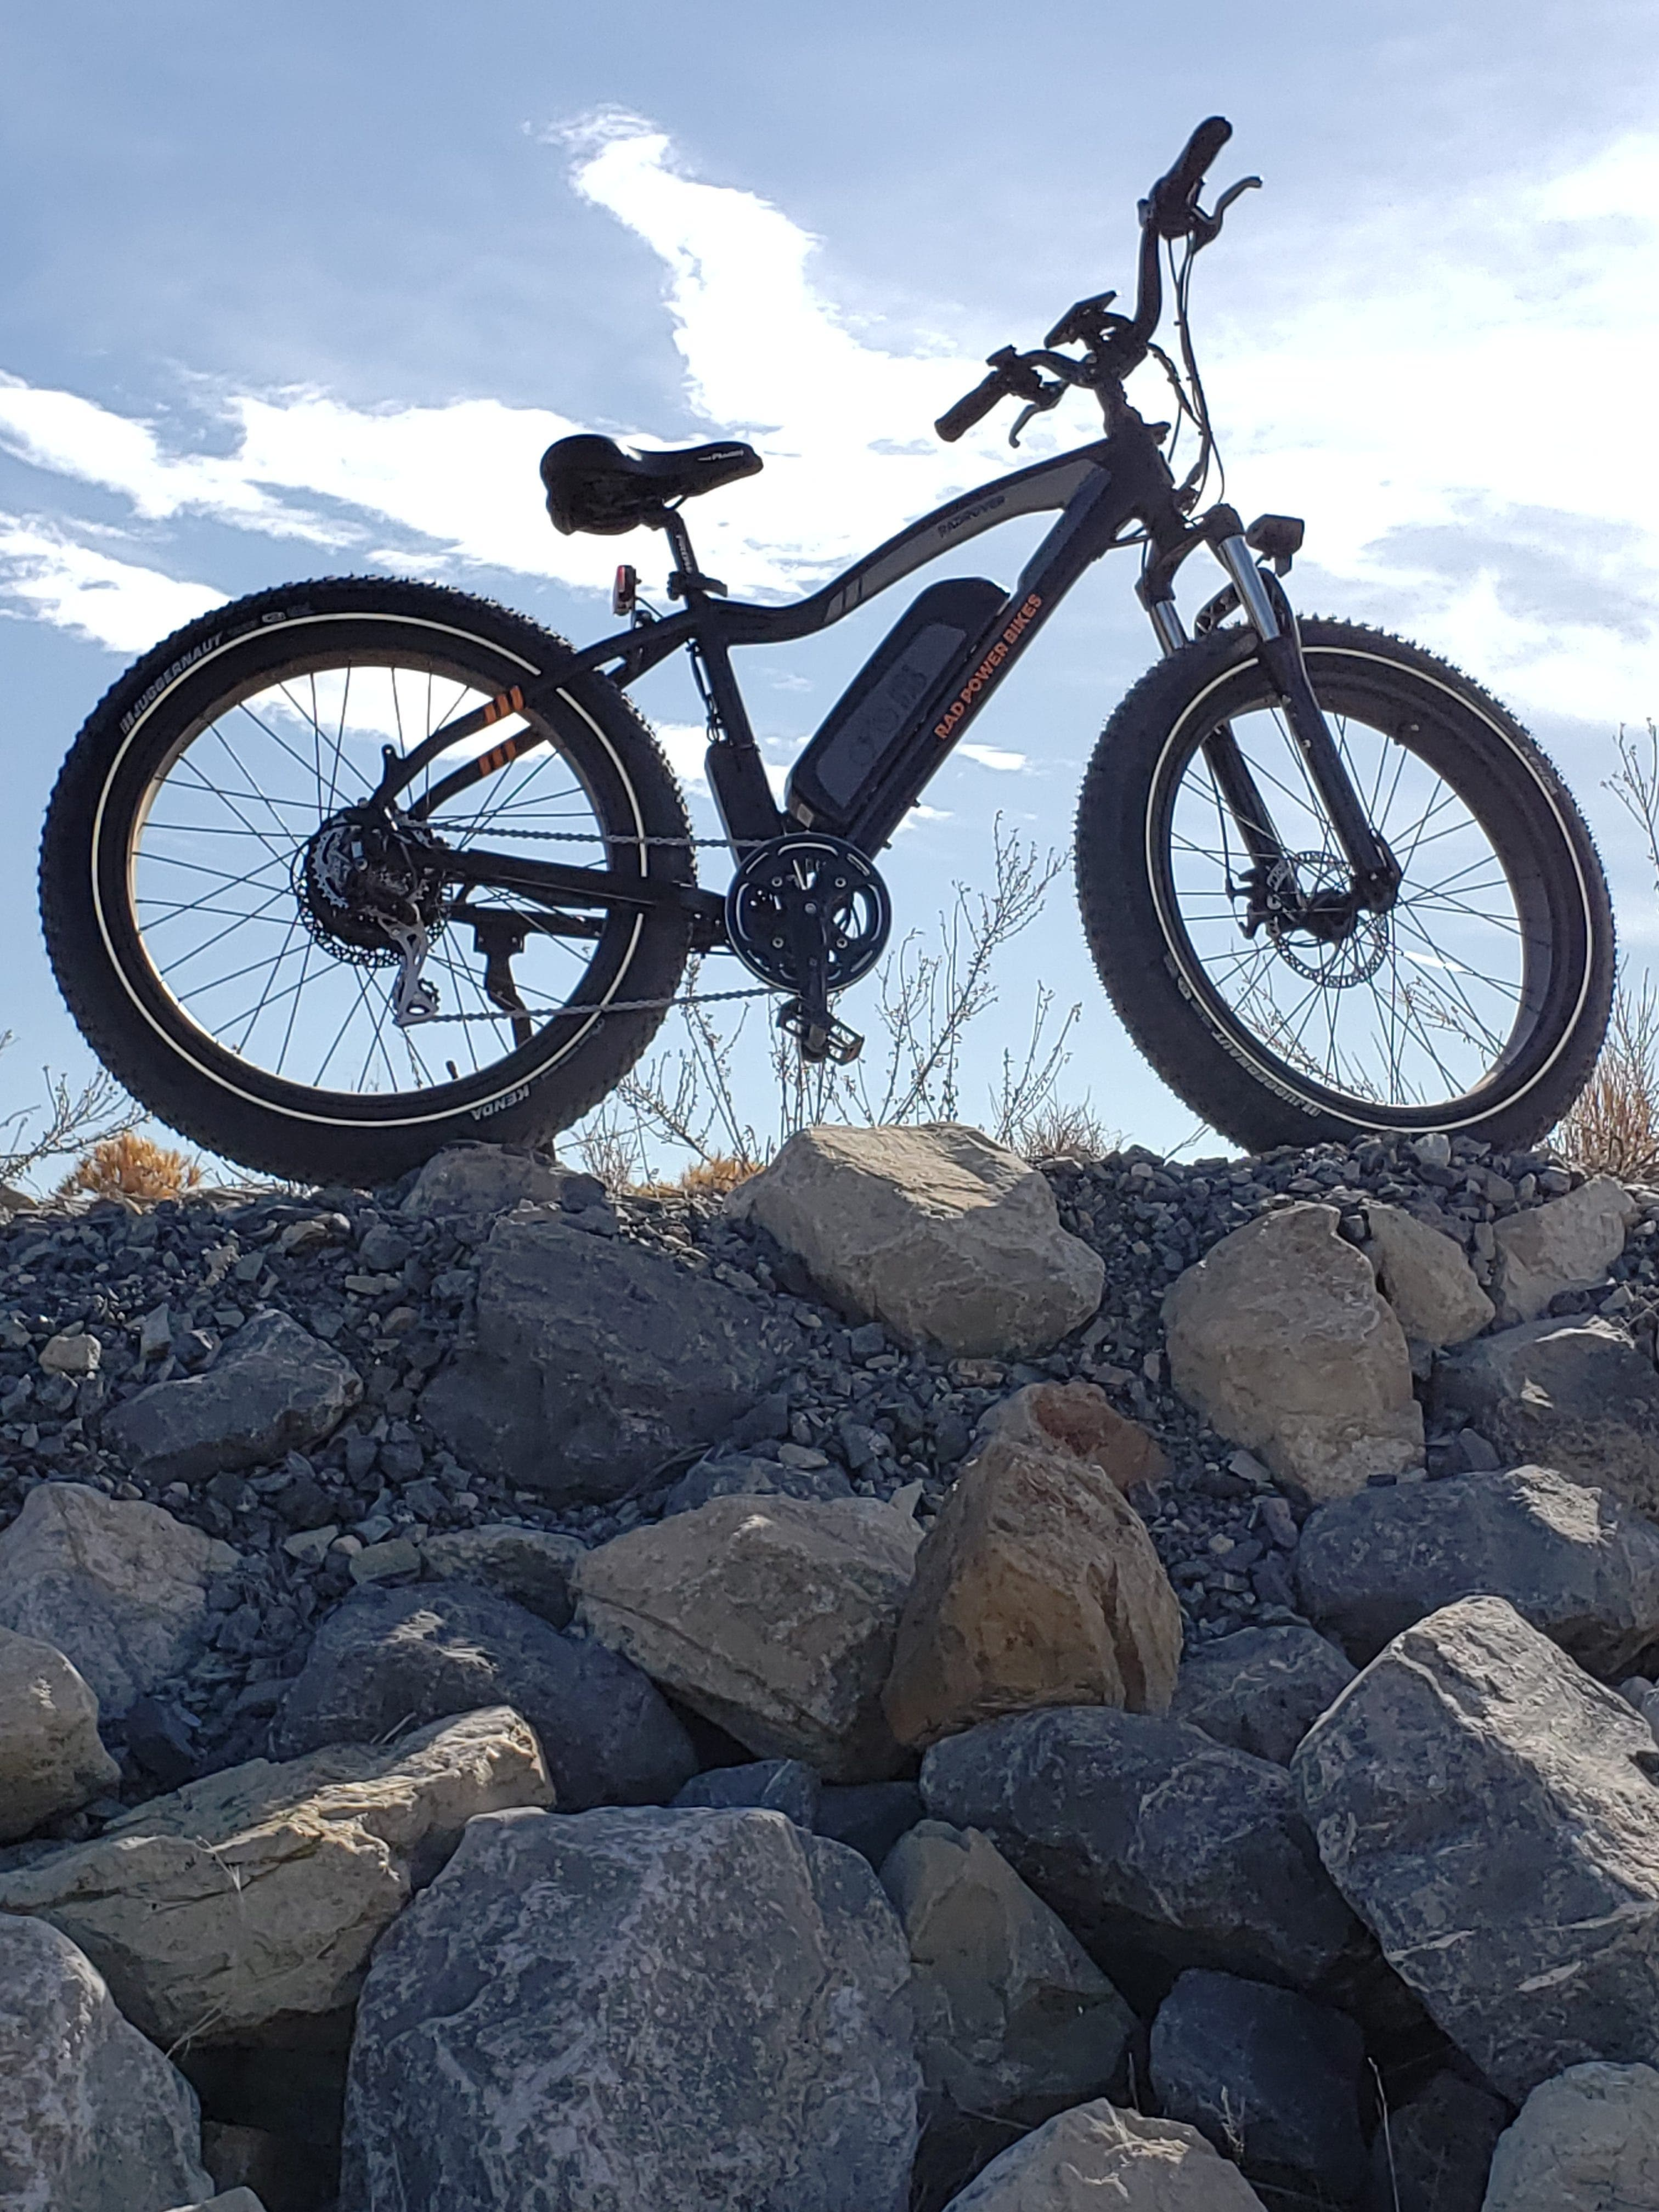 2019 RadRover electric bike